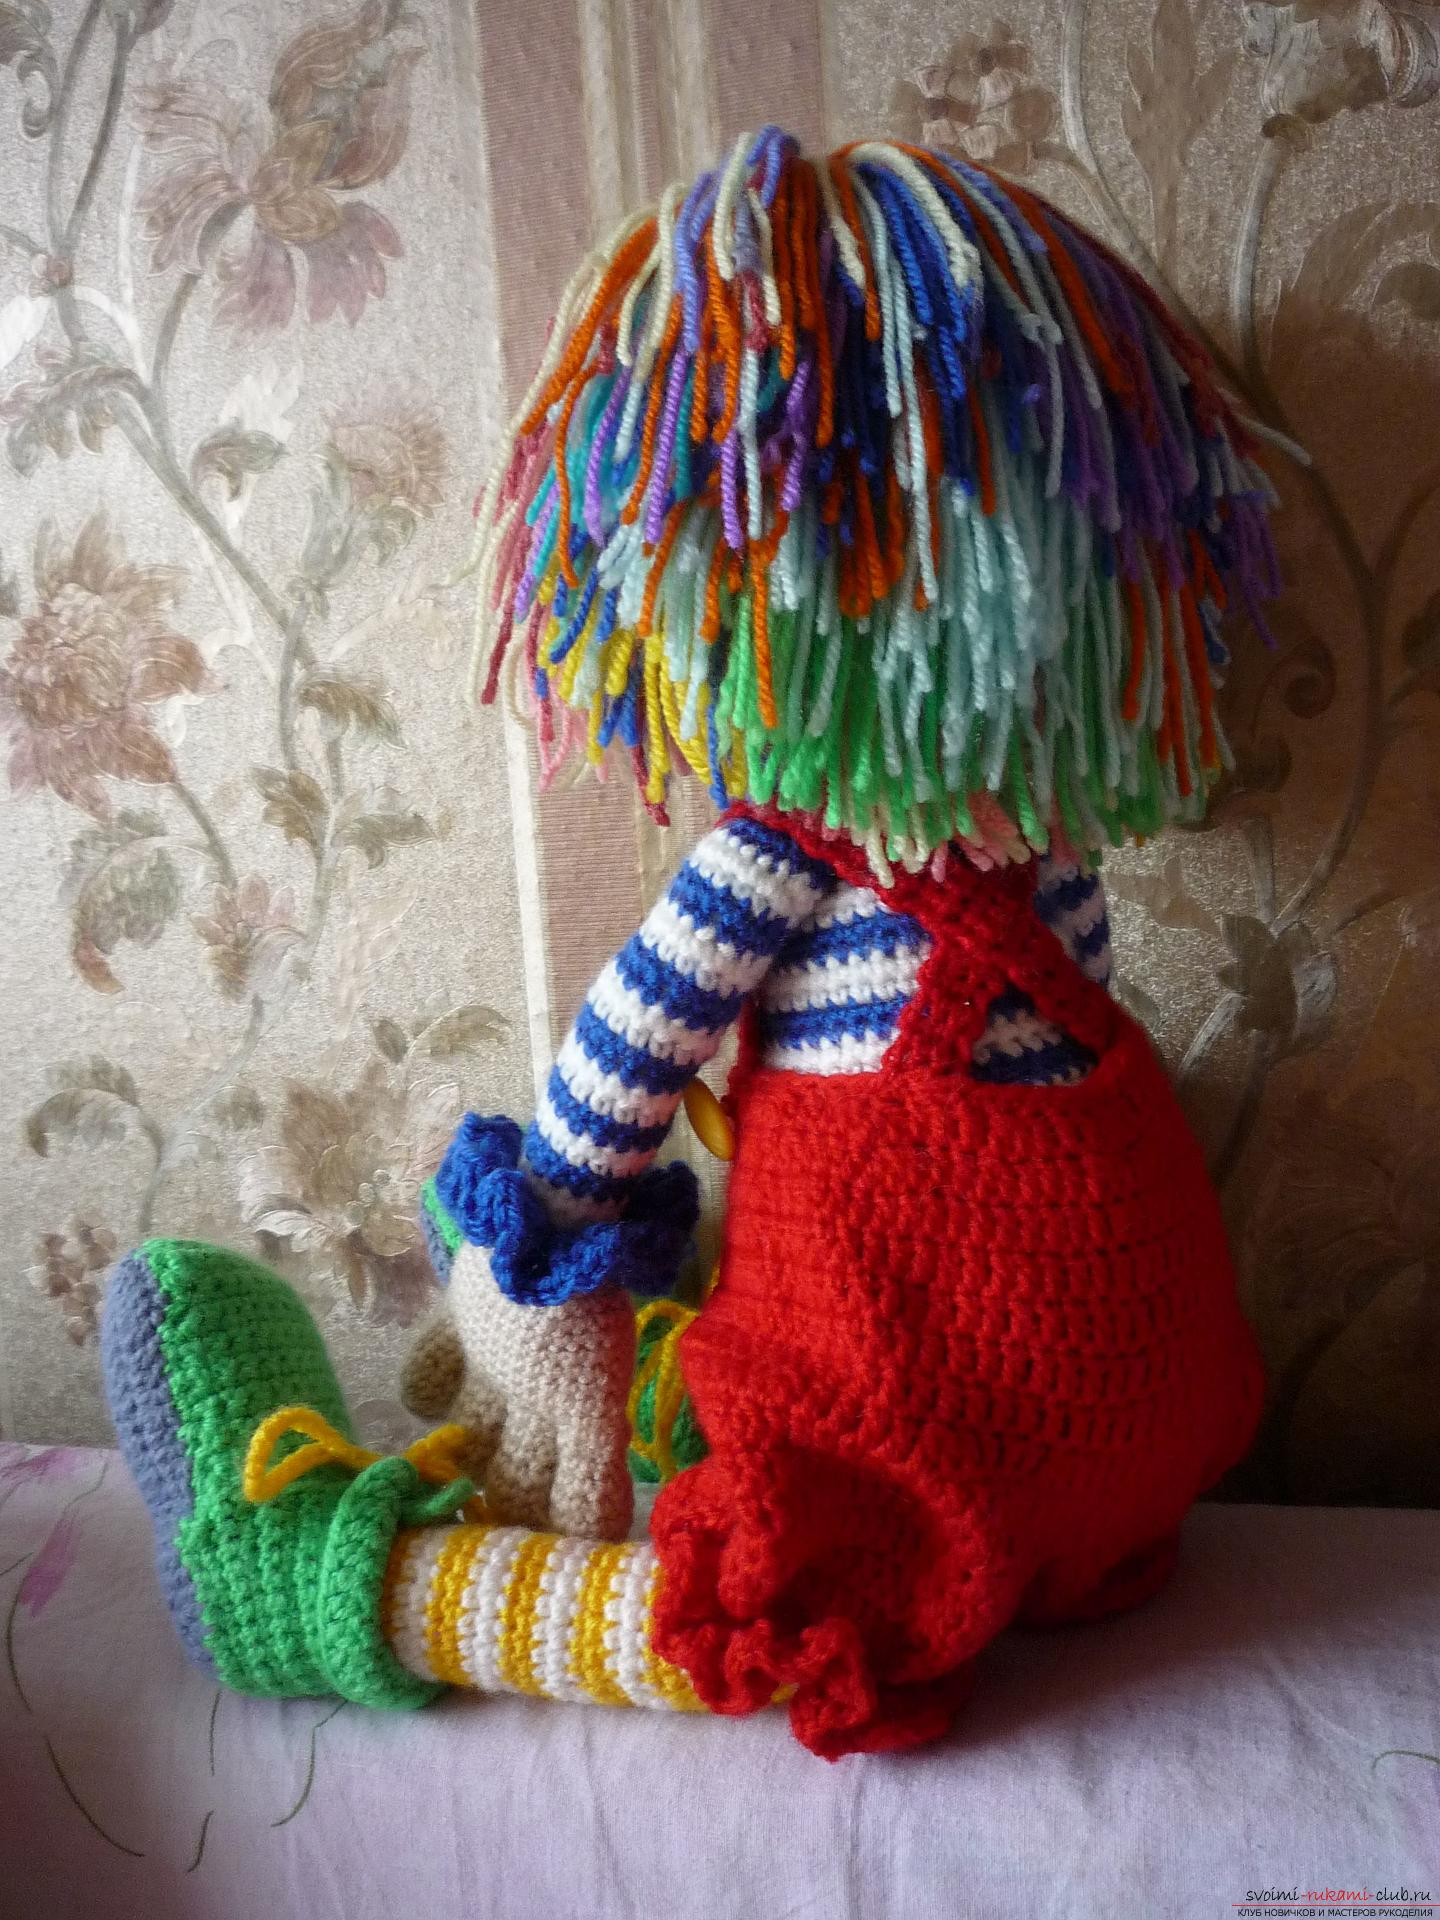 Detailed pictures of a clown toy crocheted from multi-colored yarn. Picture №3